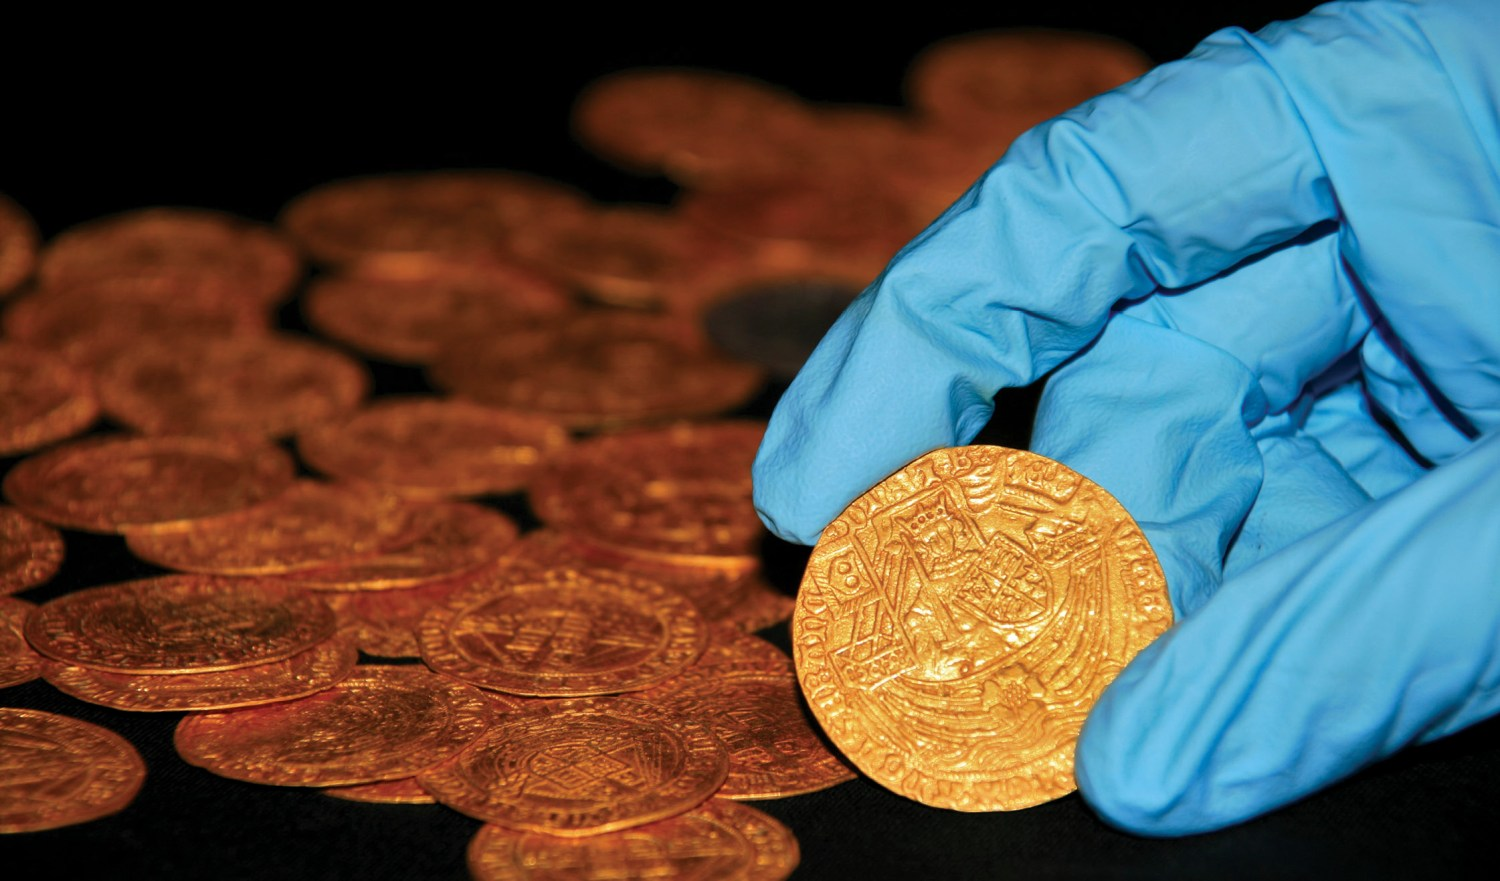 above Gardening during lockdown revealed a hoard of 64 coins from the 15th and 16th centuries in the New Forest area, Hampshire. BELOW This Roman furniture-fitting with the face of the god Oceanus was also discovered in Hampshire.